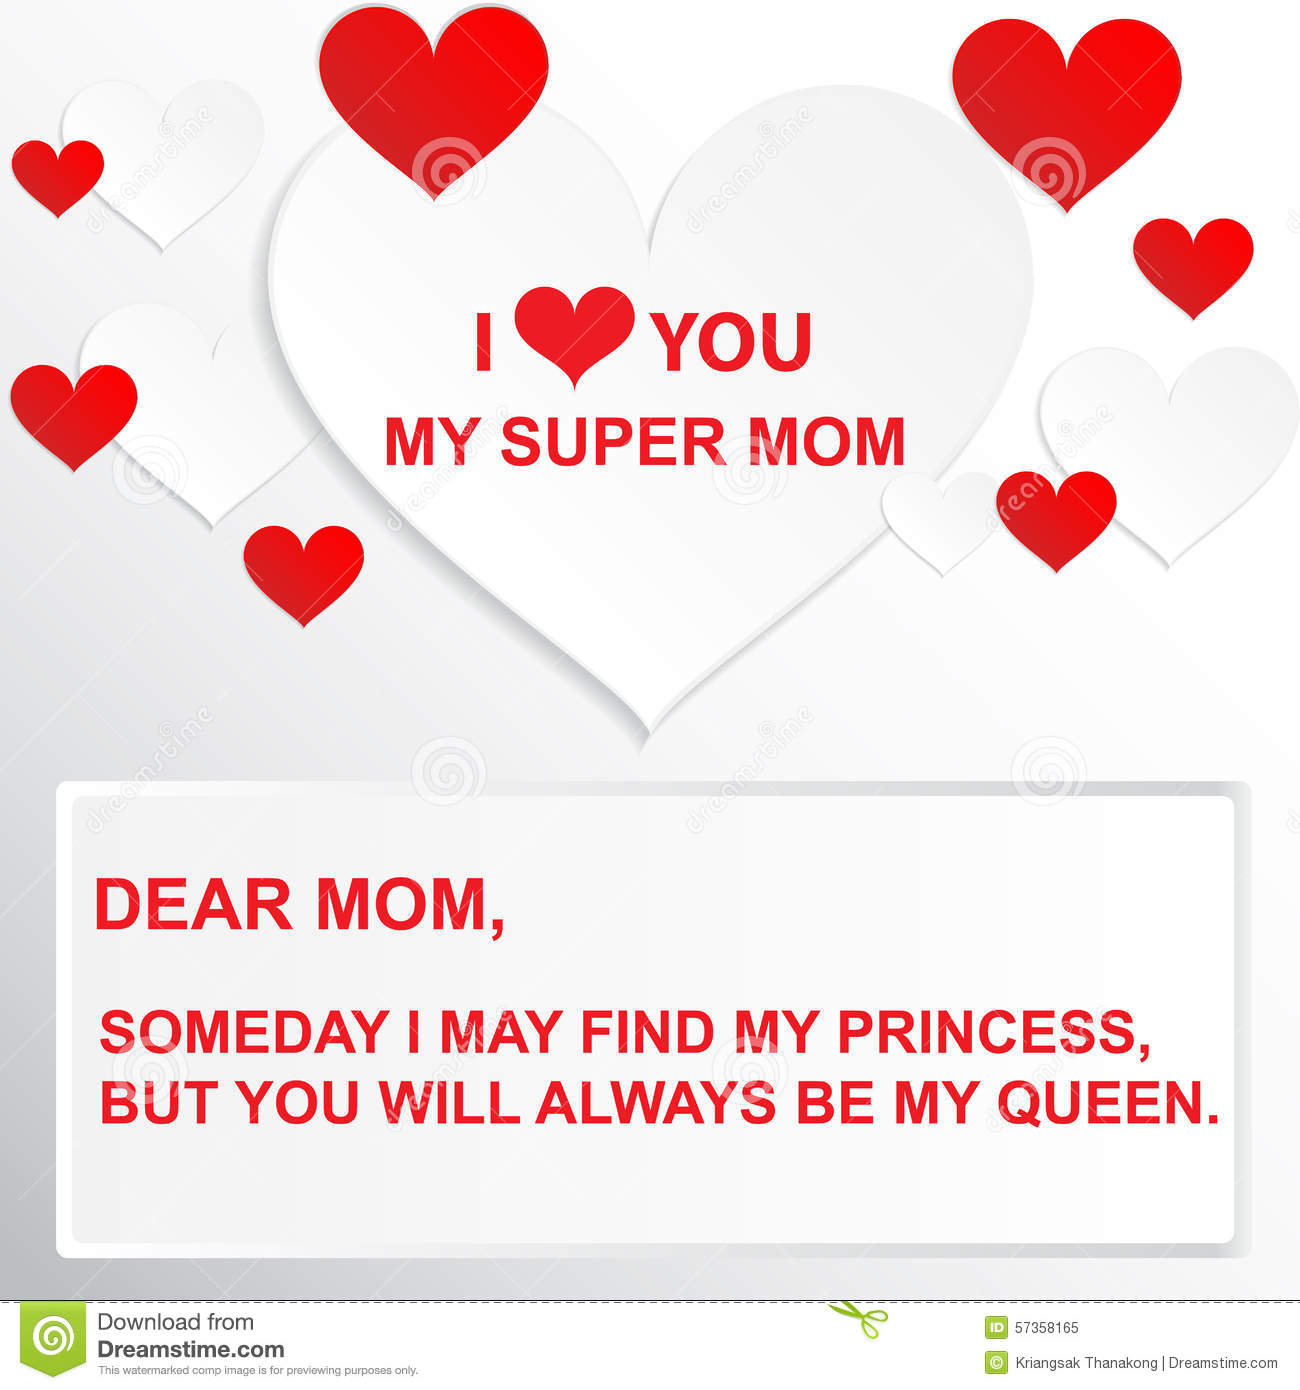 may-find-my-princess-you-will-be-my-queen-love-super-mom-love ...